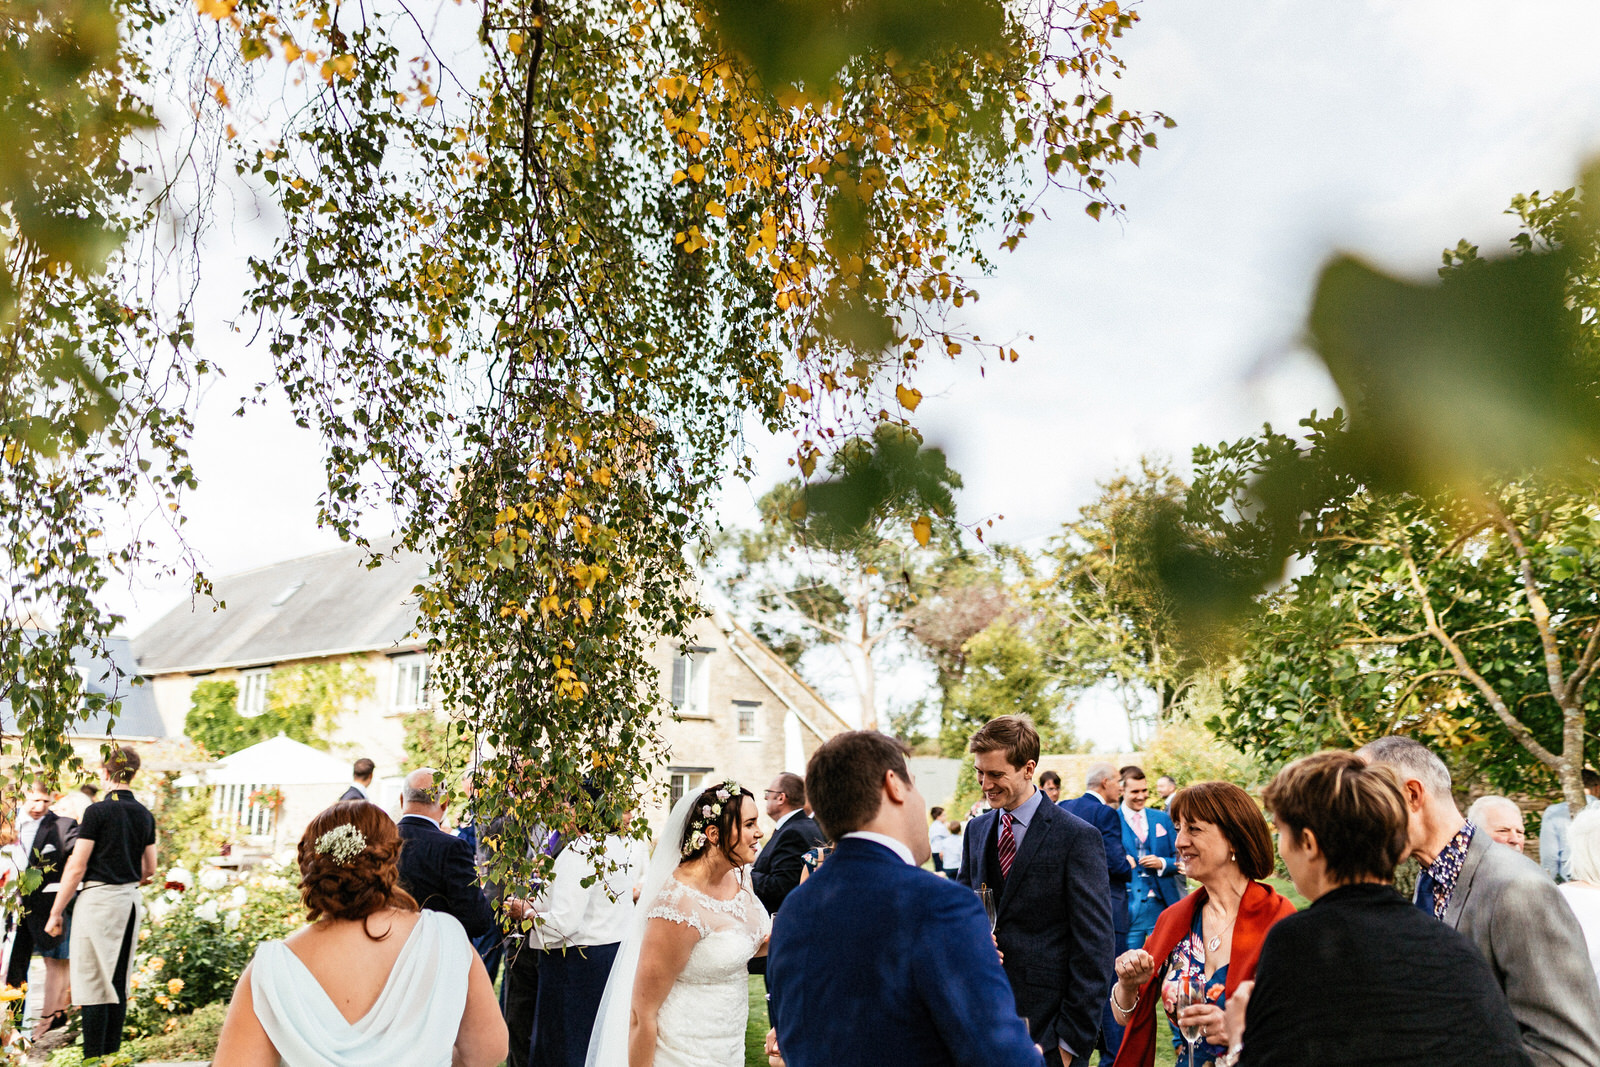 Winkworth-Farm-Wedding-Photographer-076.jpg